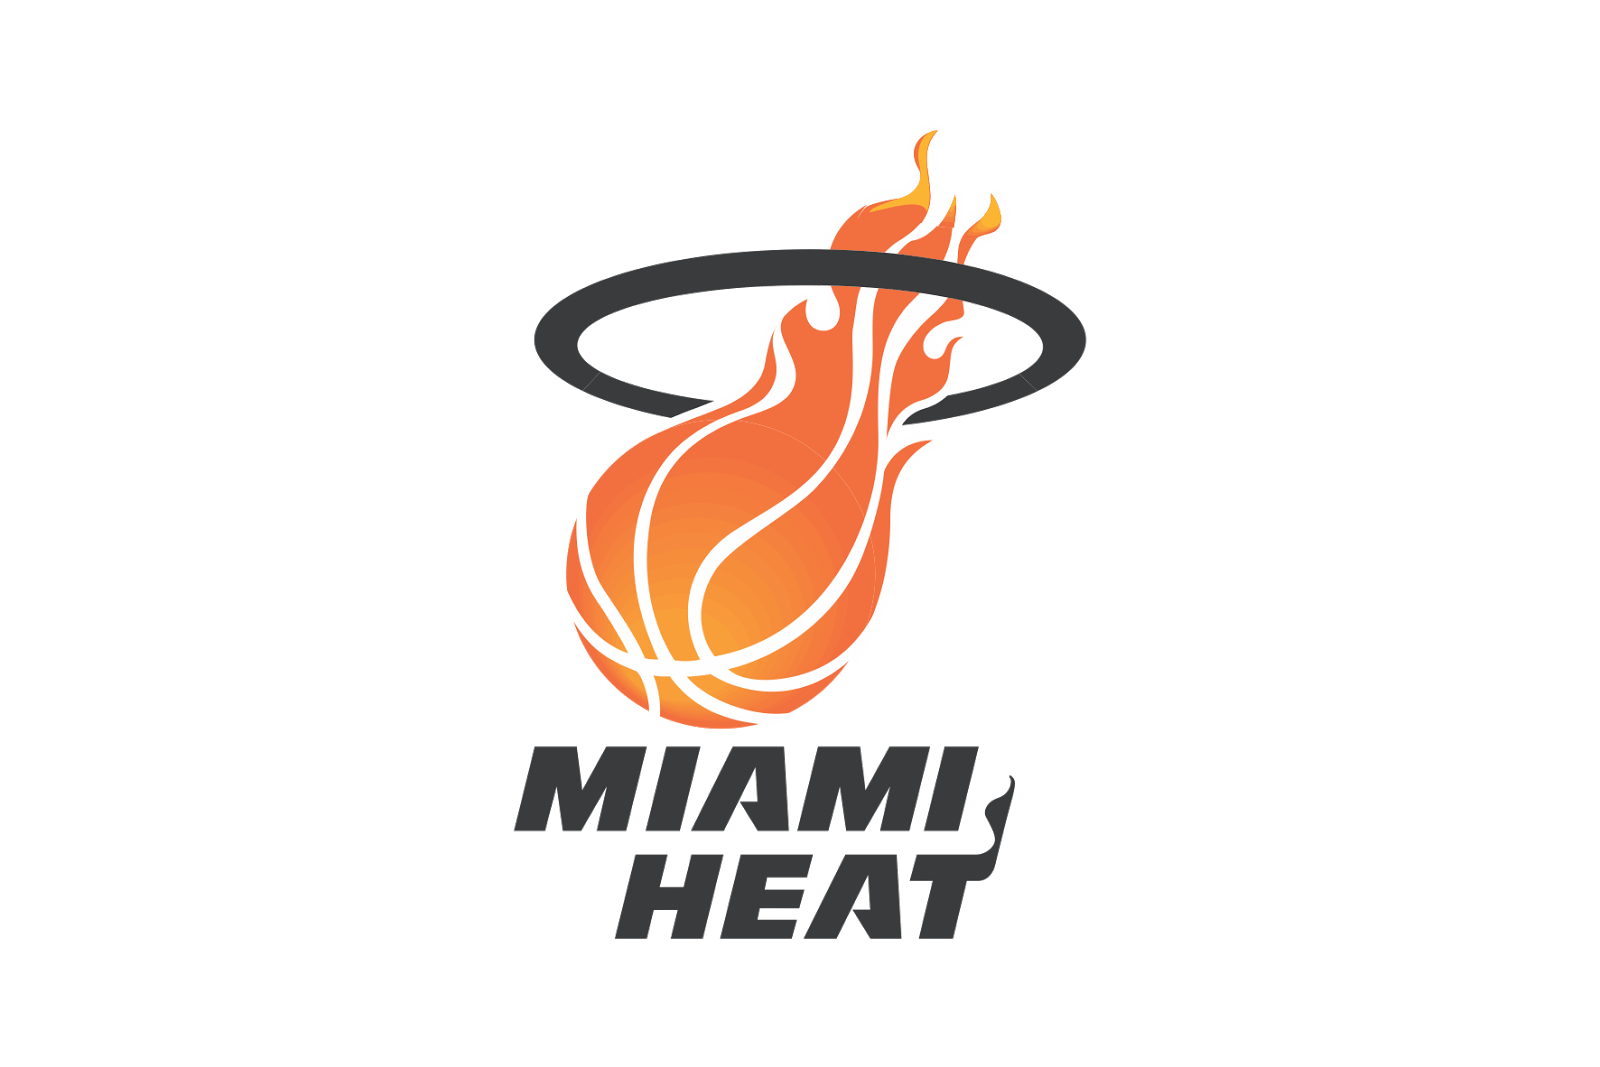 Miami Heat Background Png Free Miami Heat Background Png Transparent Images 57927 Pngio